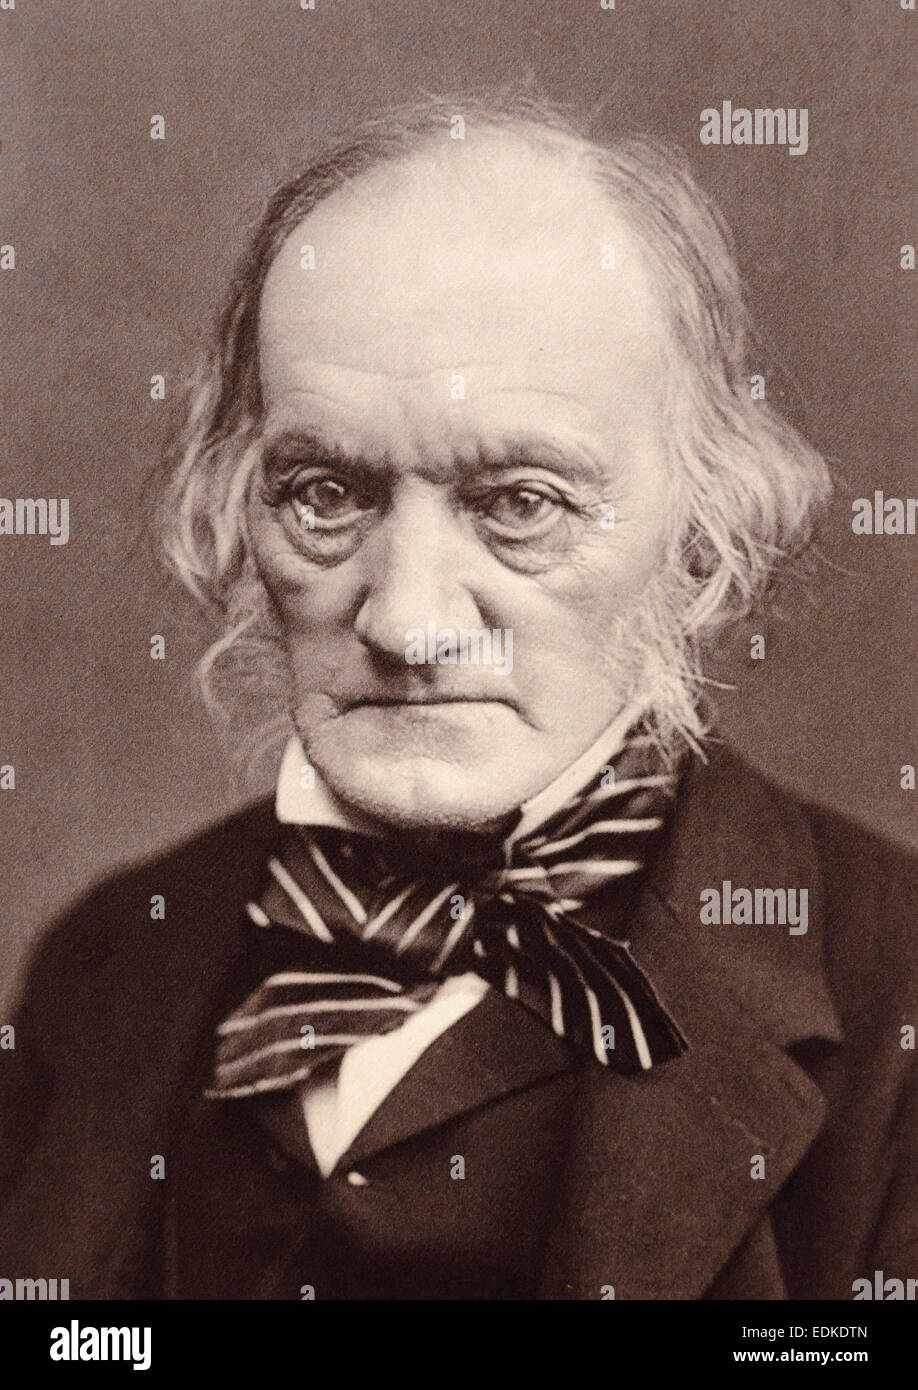 Sir Richard Owen, 1804 – 1892.  English biologist, comparative anatomist and paleontologist. - Stock Image